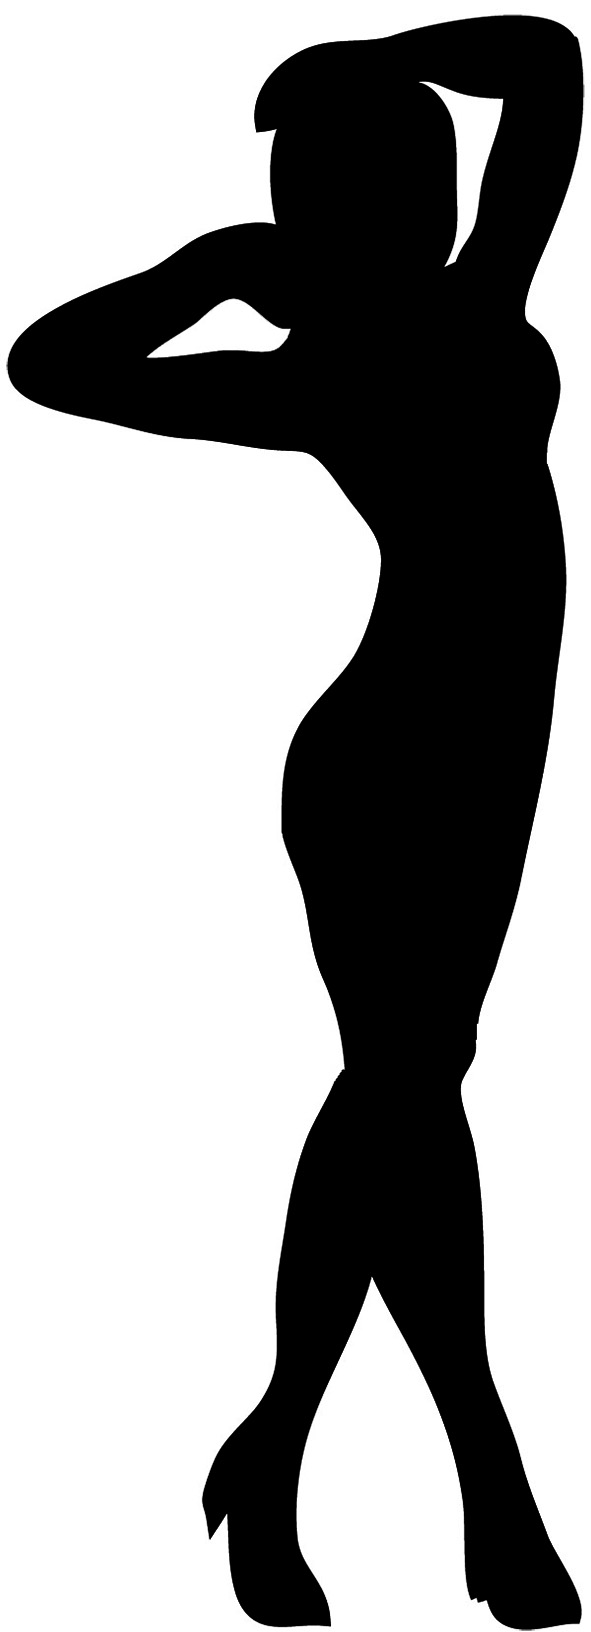 Female Silhouette Silhouette With Outline Black Outline Silhouette